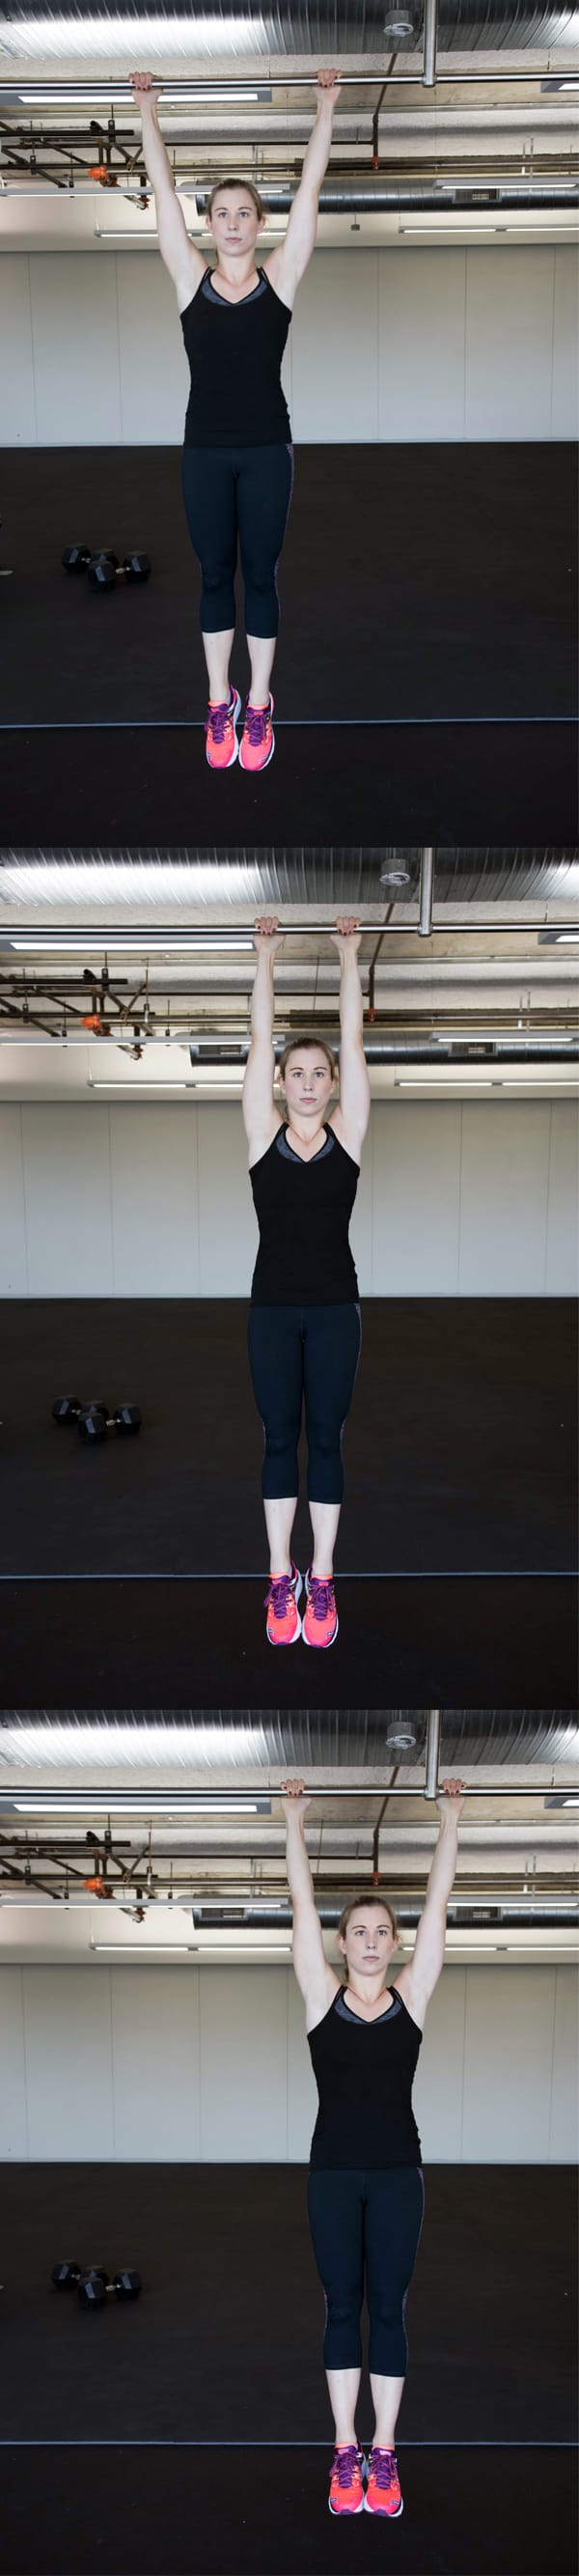 4 Moves That Can Give You Arms Like a Gymnast - Bar Shimmy